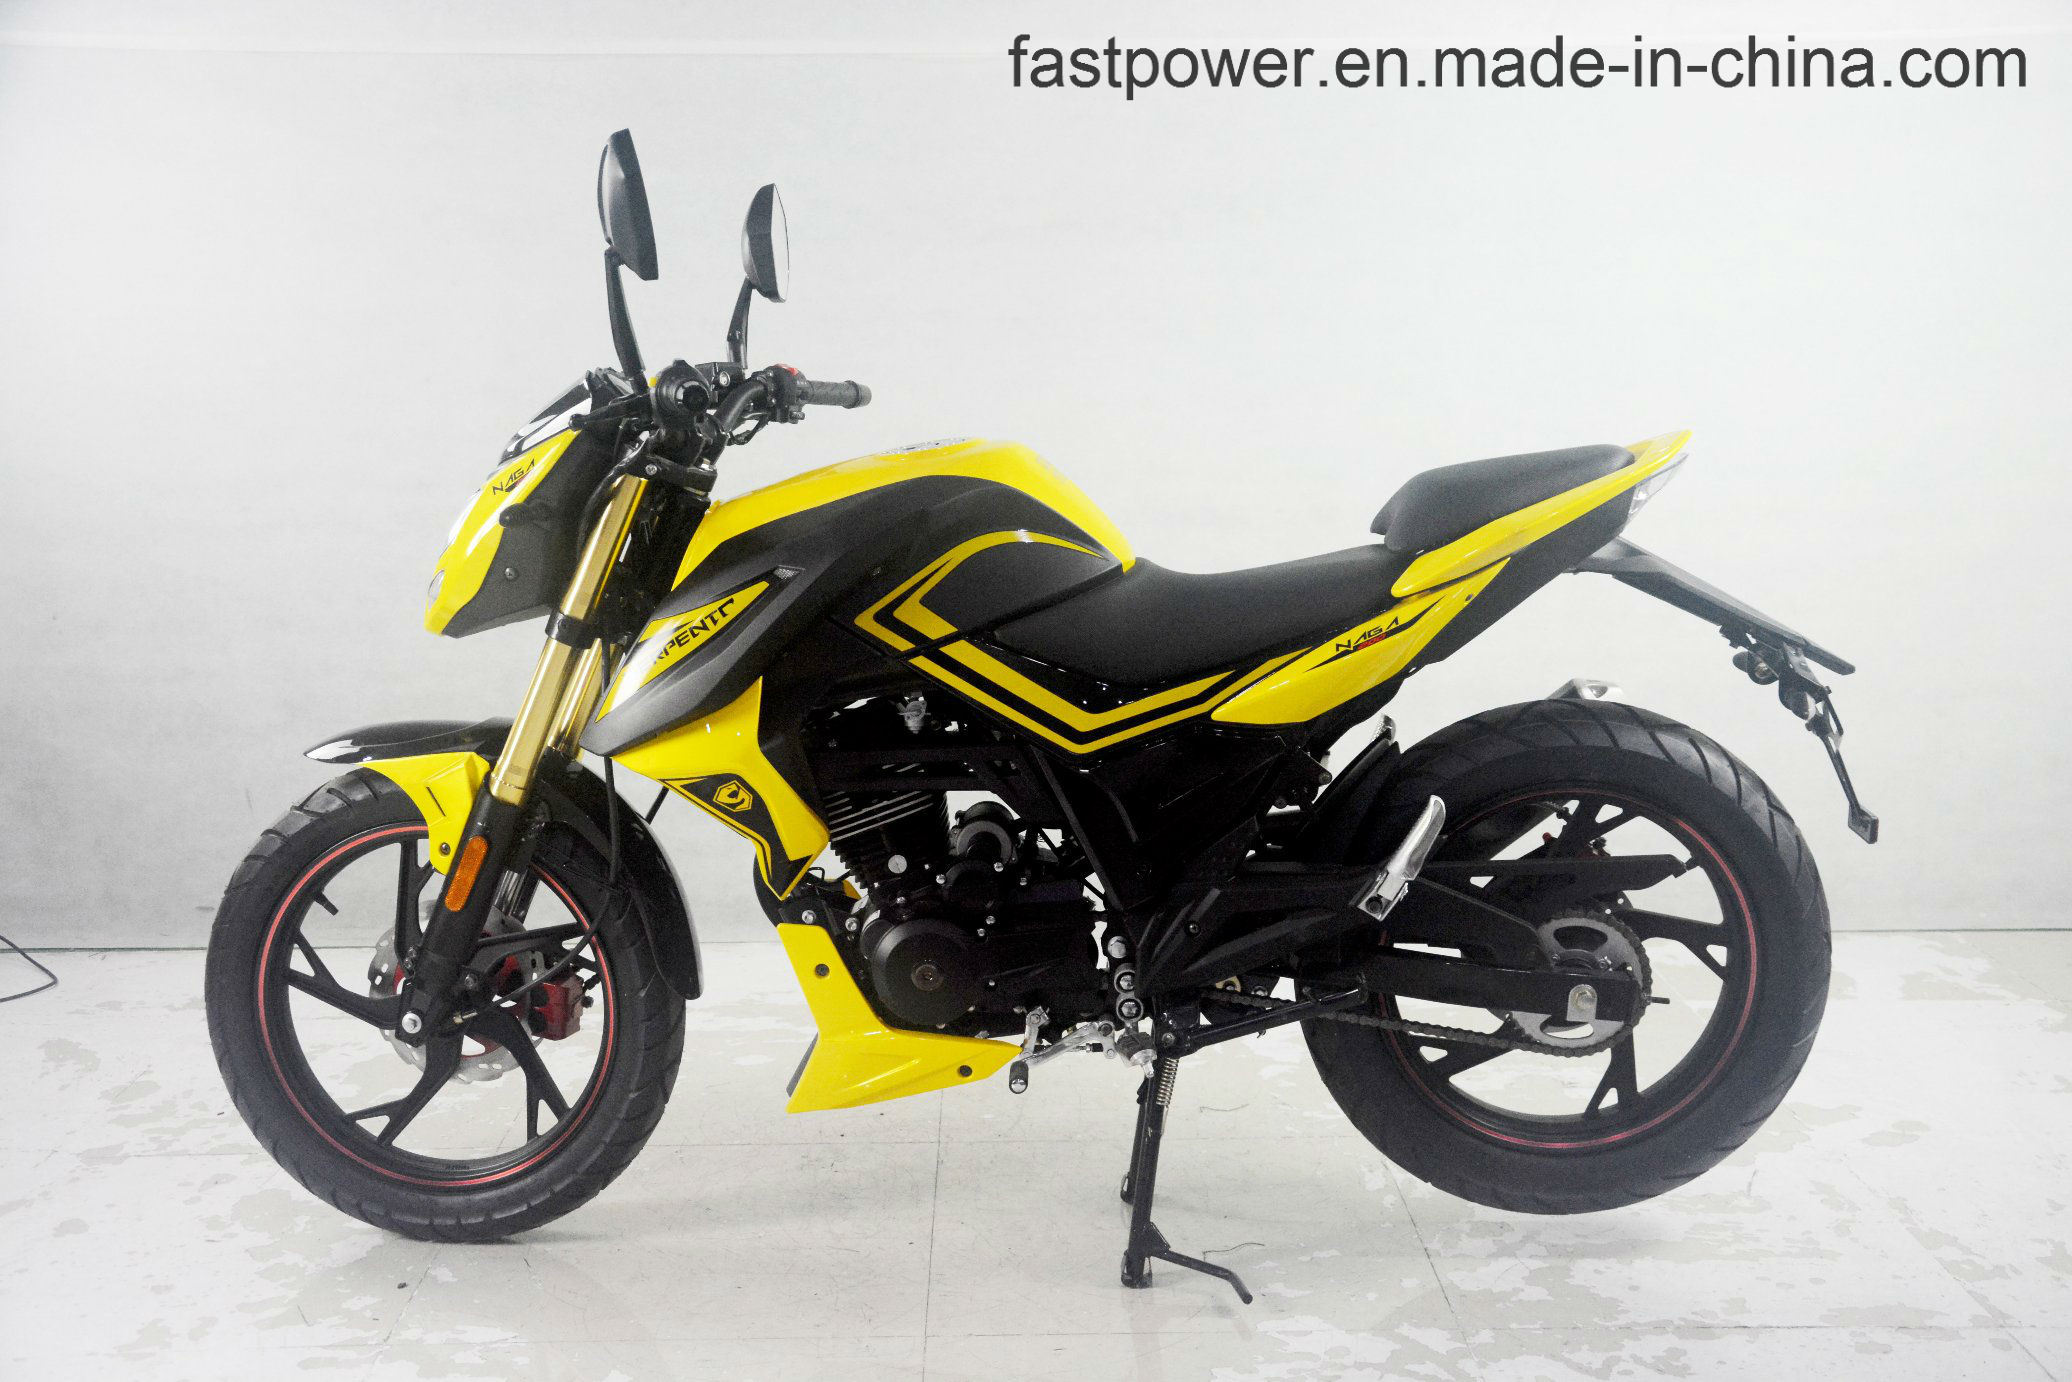 169cc Motorcycle